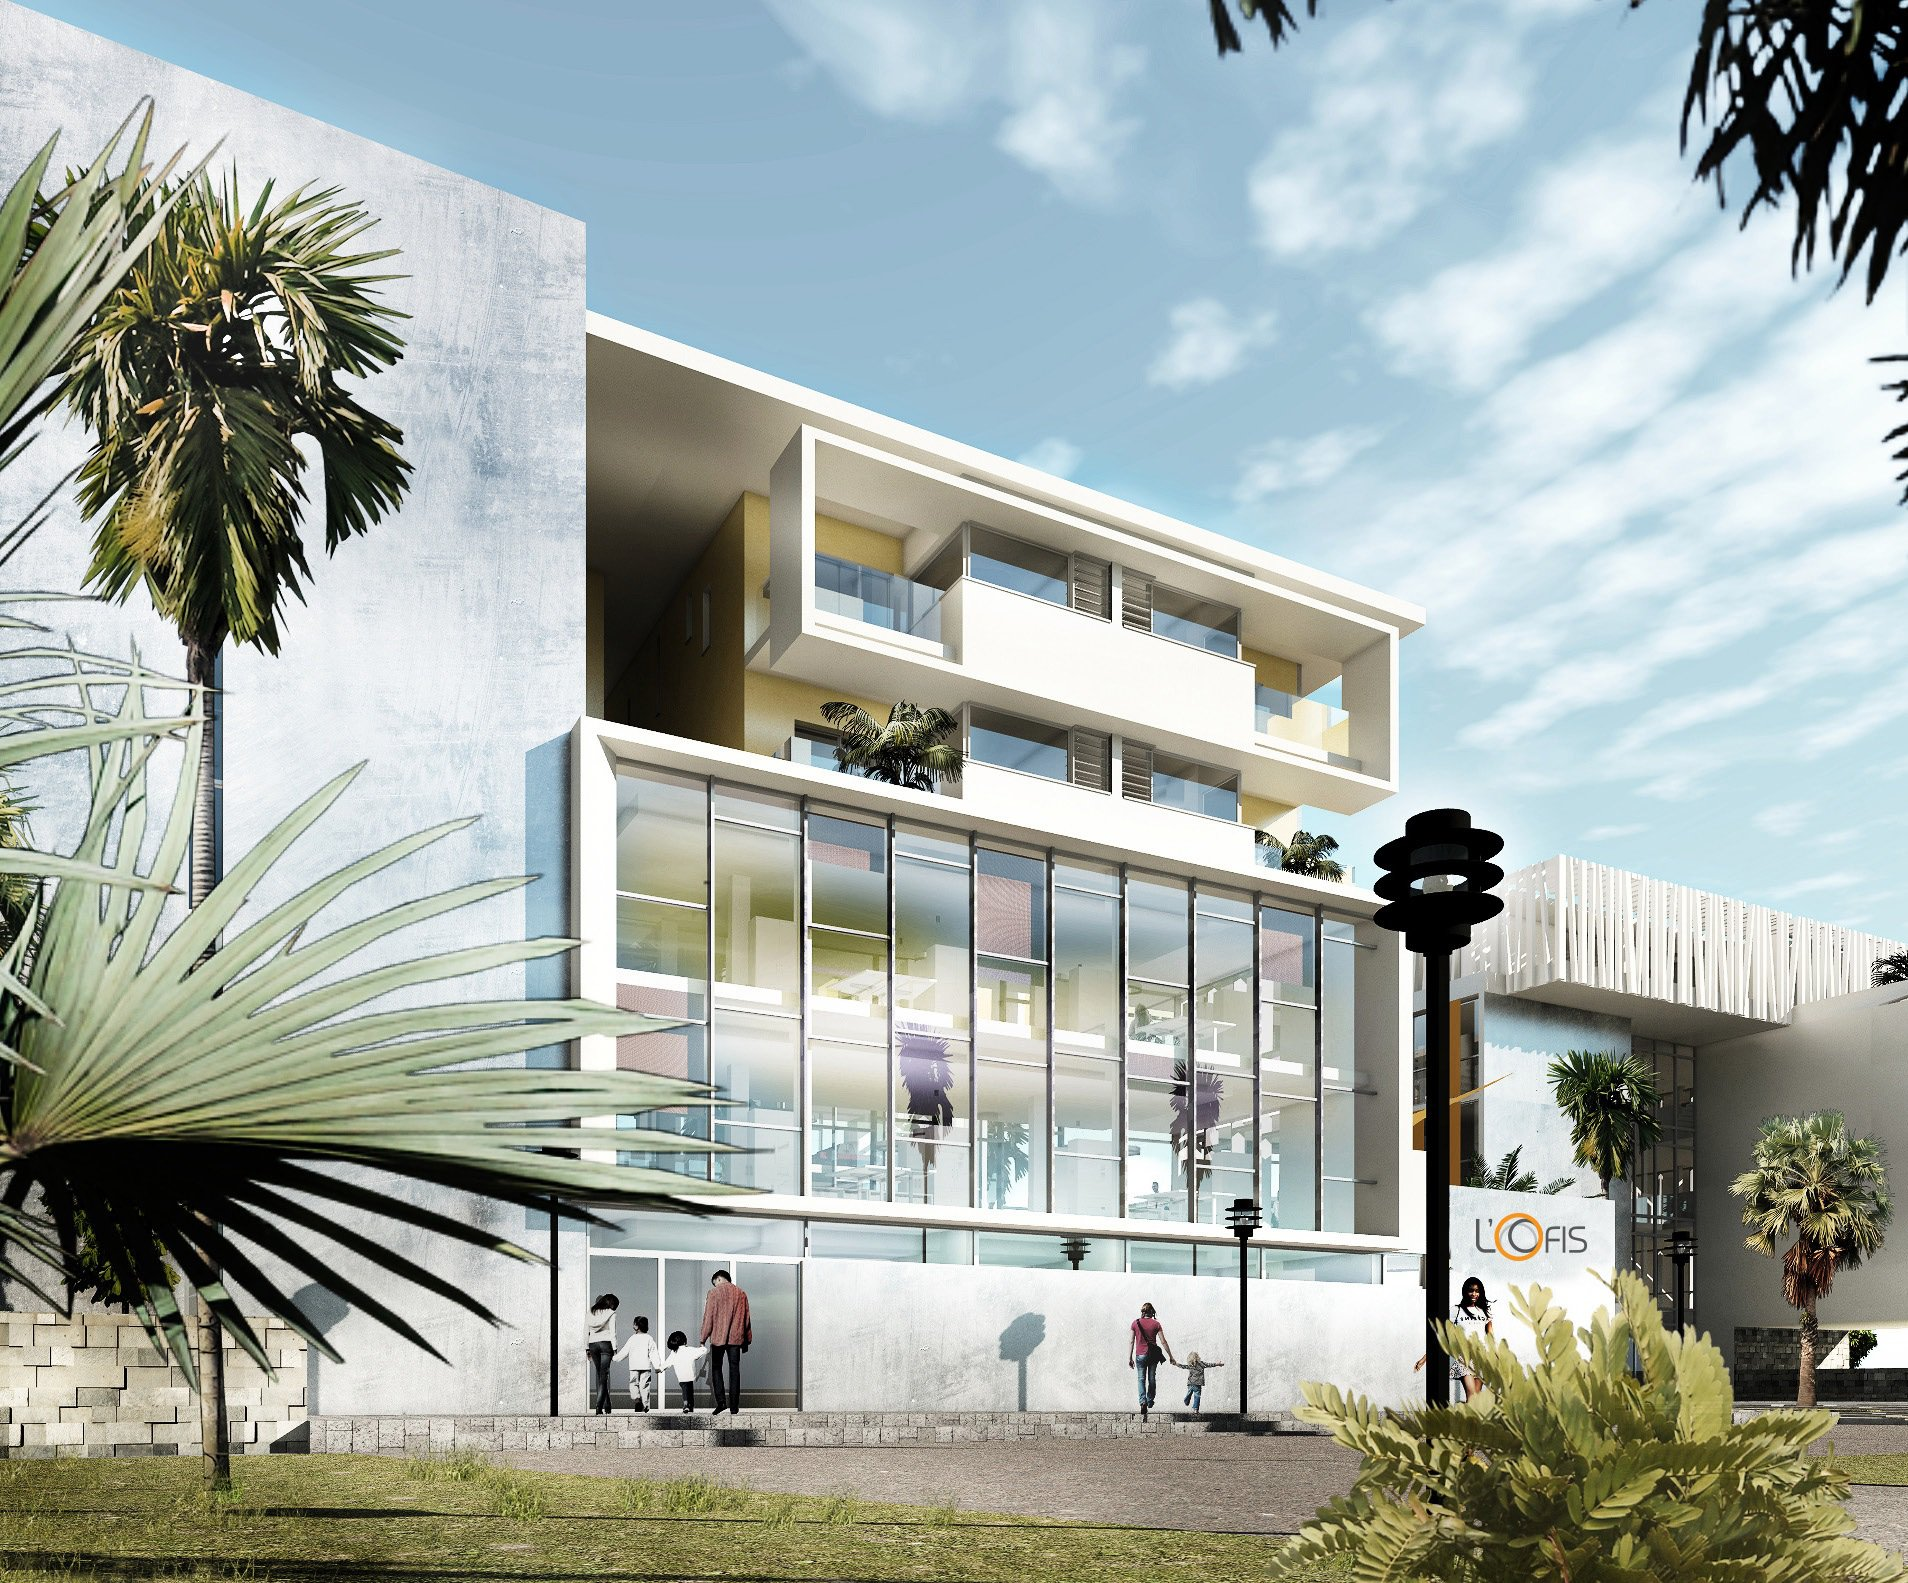 Innovative concept: Commercial, Work and Residential